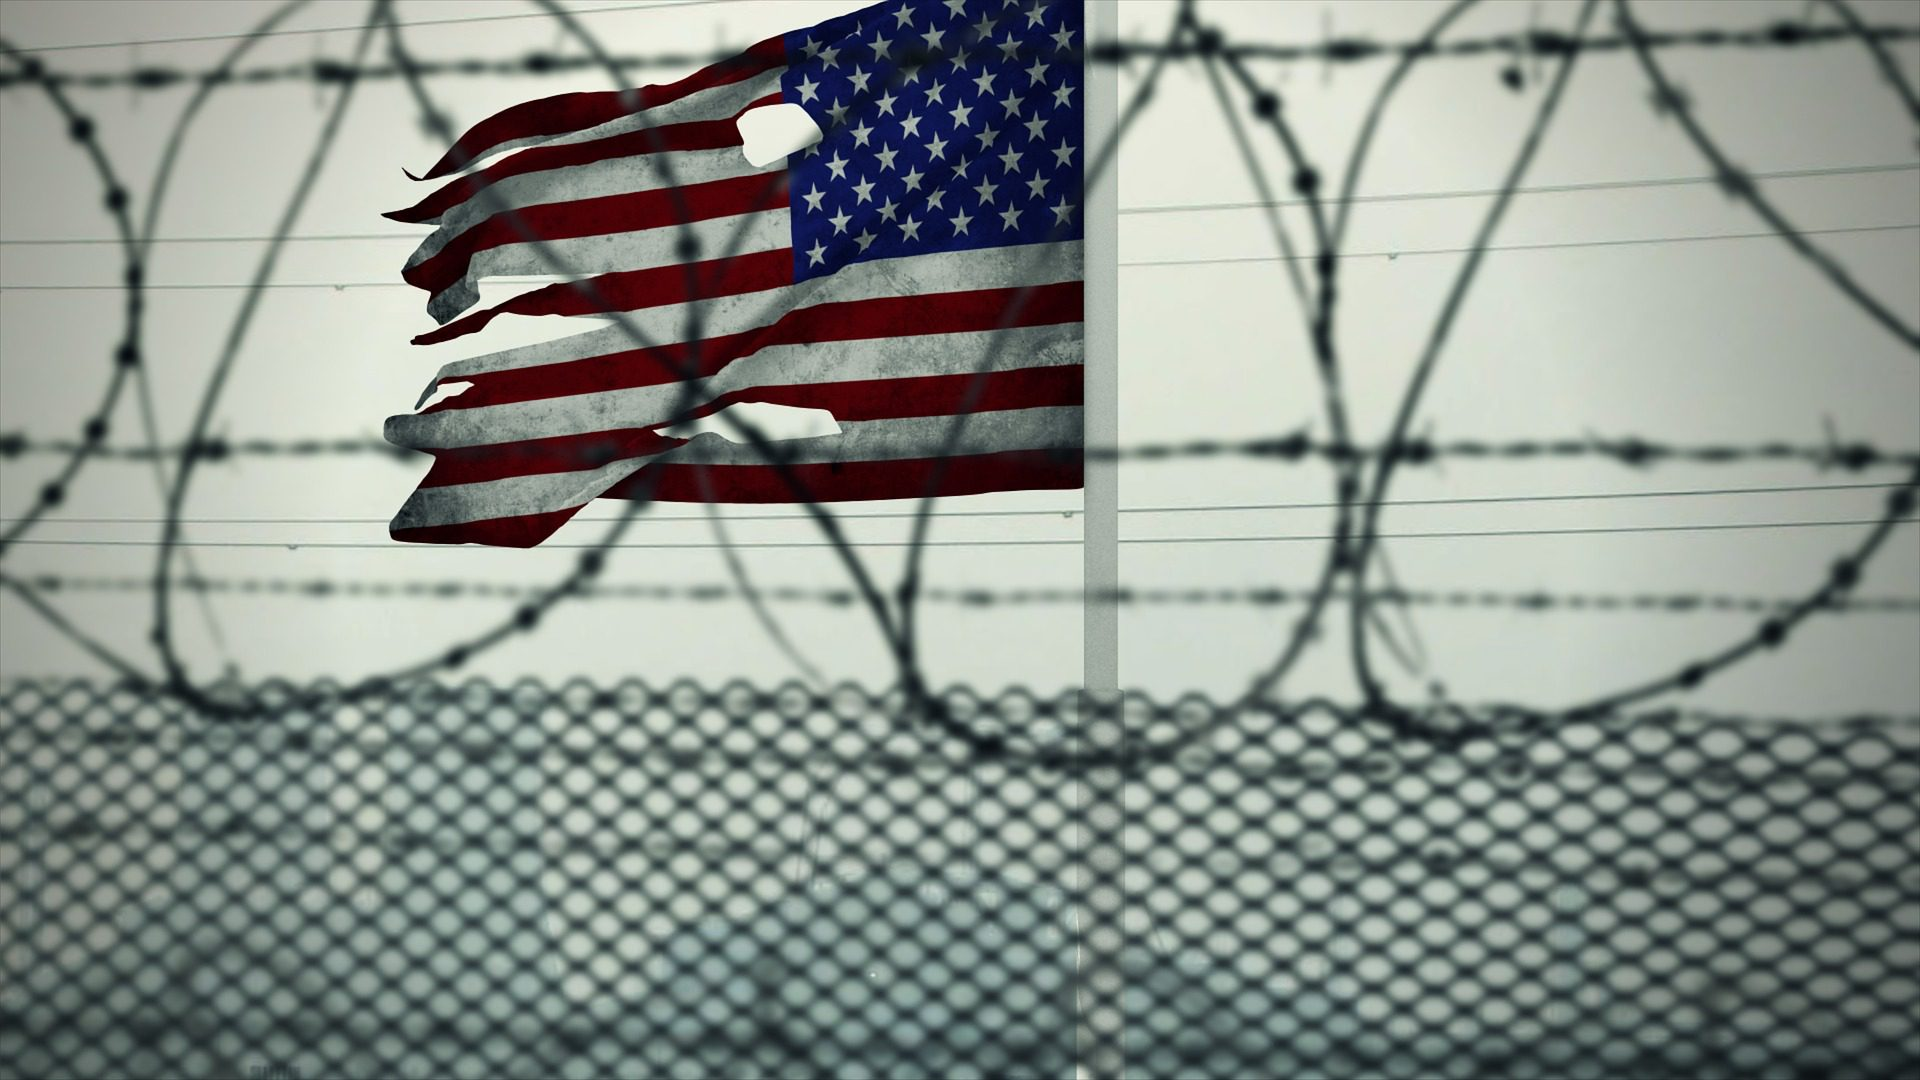 As Juneteenth marks the end of slavery, lawmakers turn their focus to forced prison labor